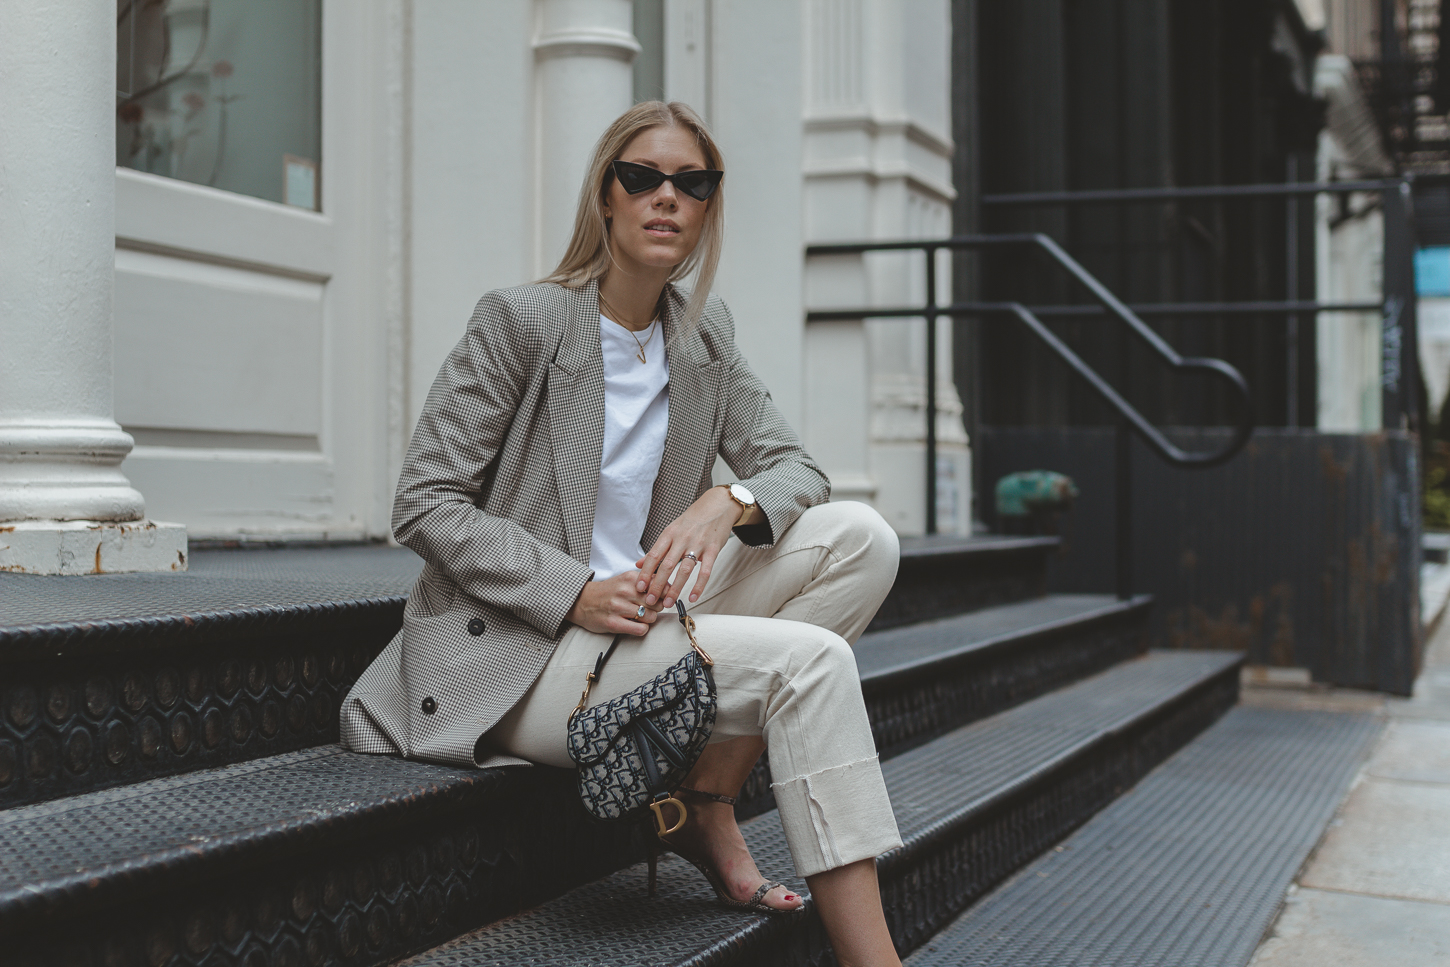 Checked blazer, Saddle bag, snake print shoes – Herbsttrends I